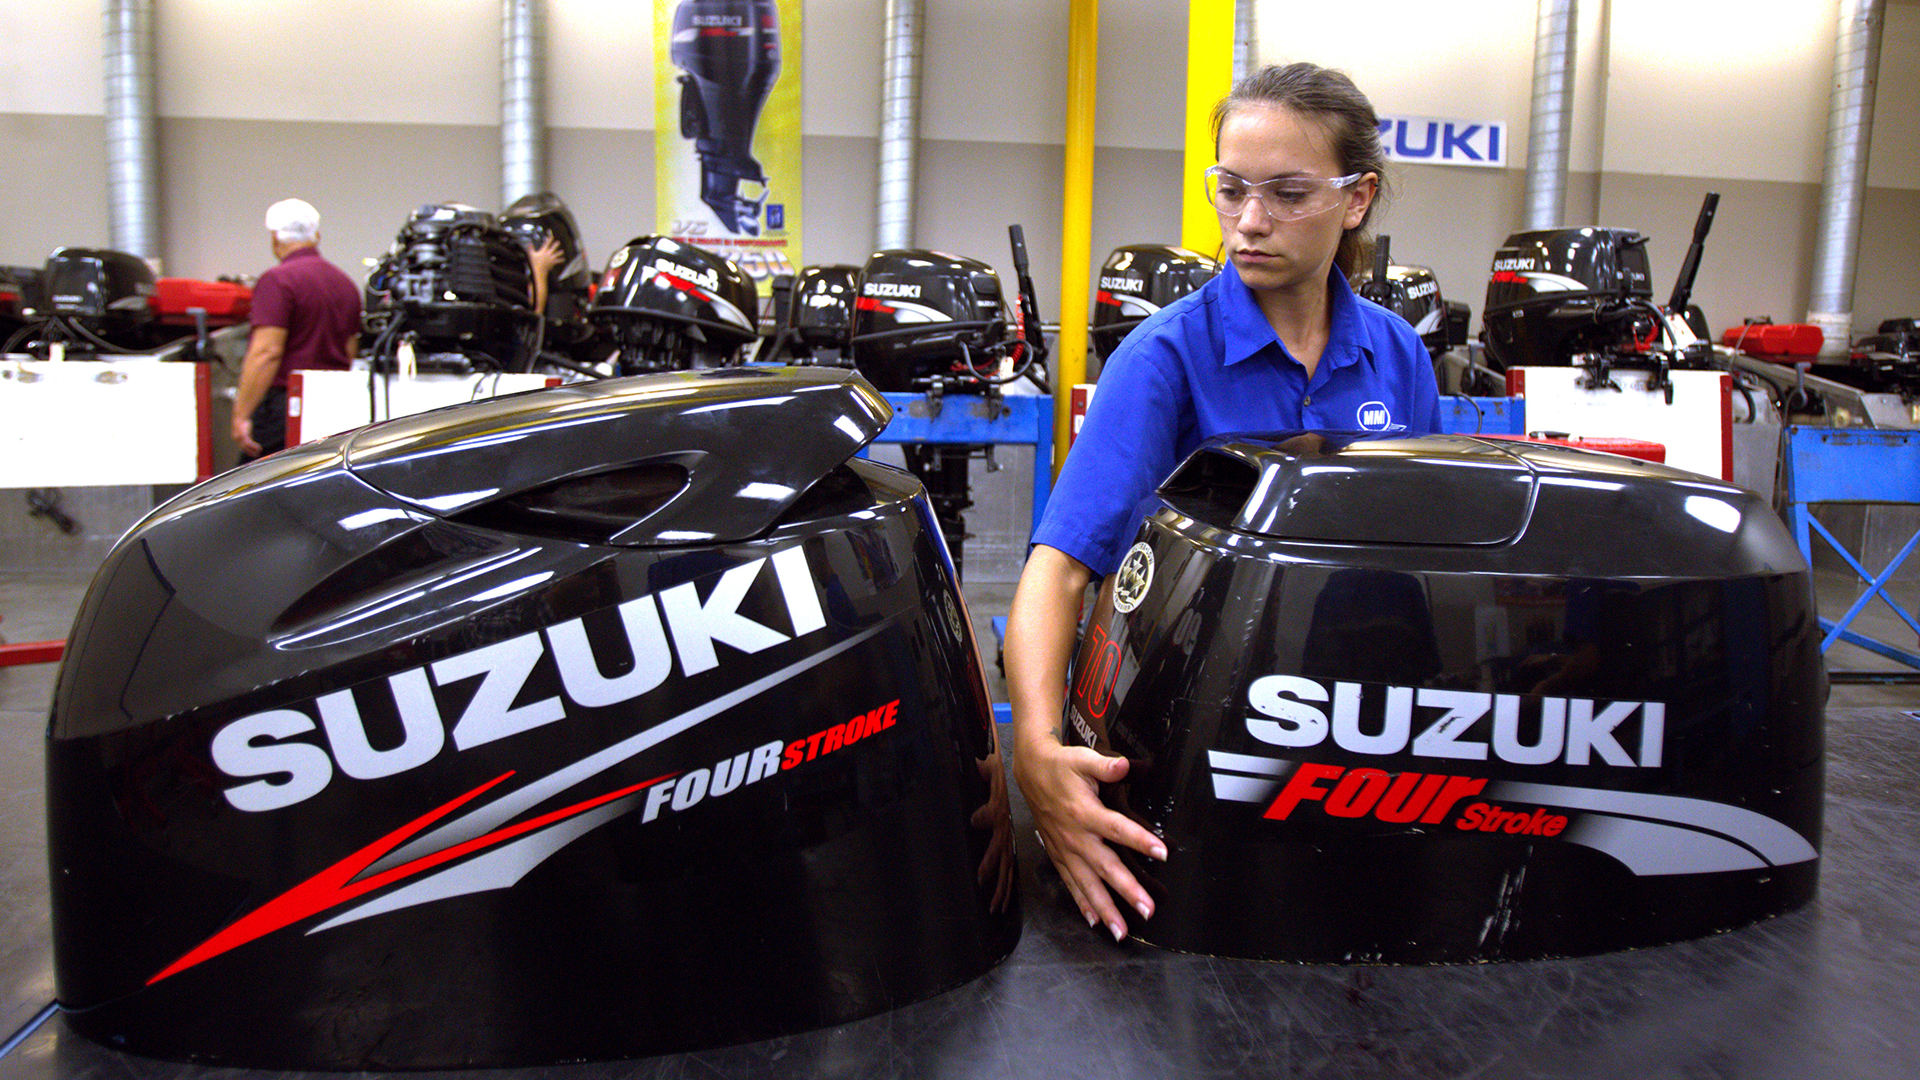 MMI student moving Suzuki parts in the Suzuki marine lab